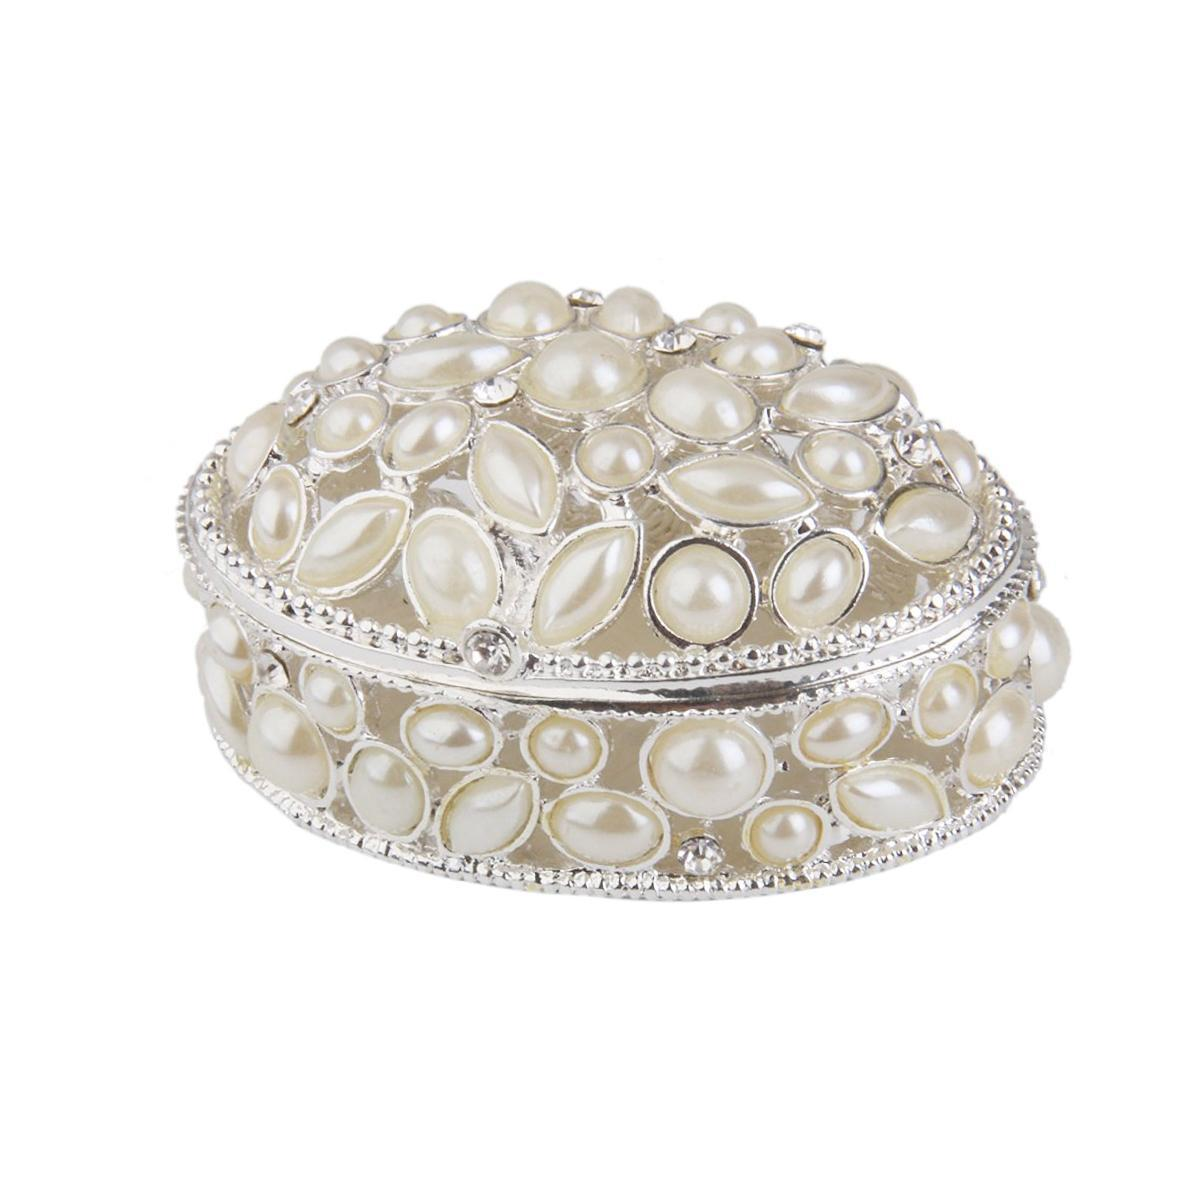 Faux Pearl Embellished Oval Jewelry Box Organizer Travels Portable For Girls